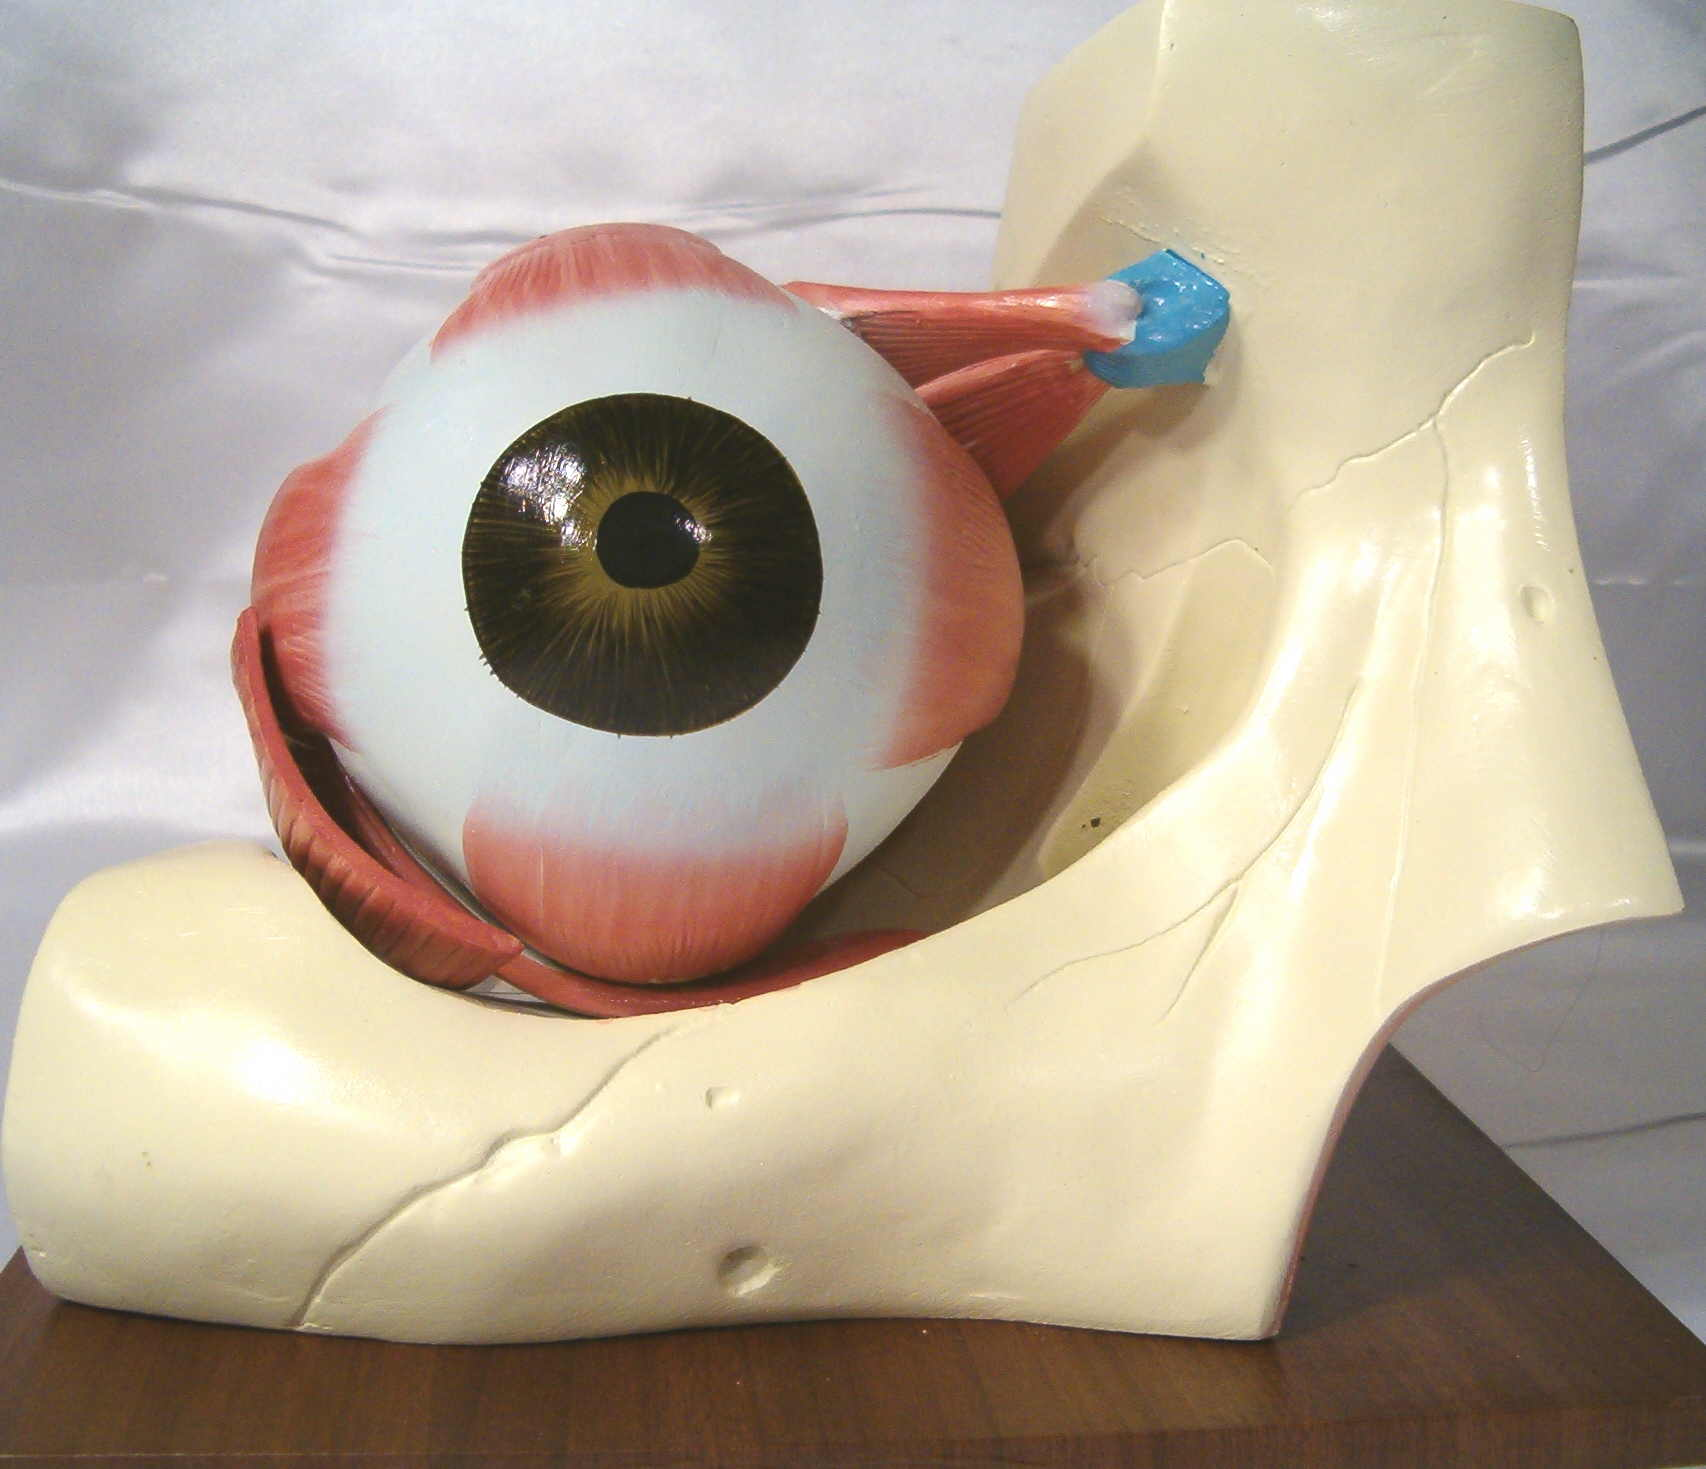 Cow Eye Dissection Lab Worksheet